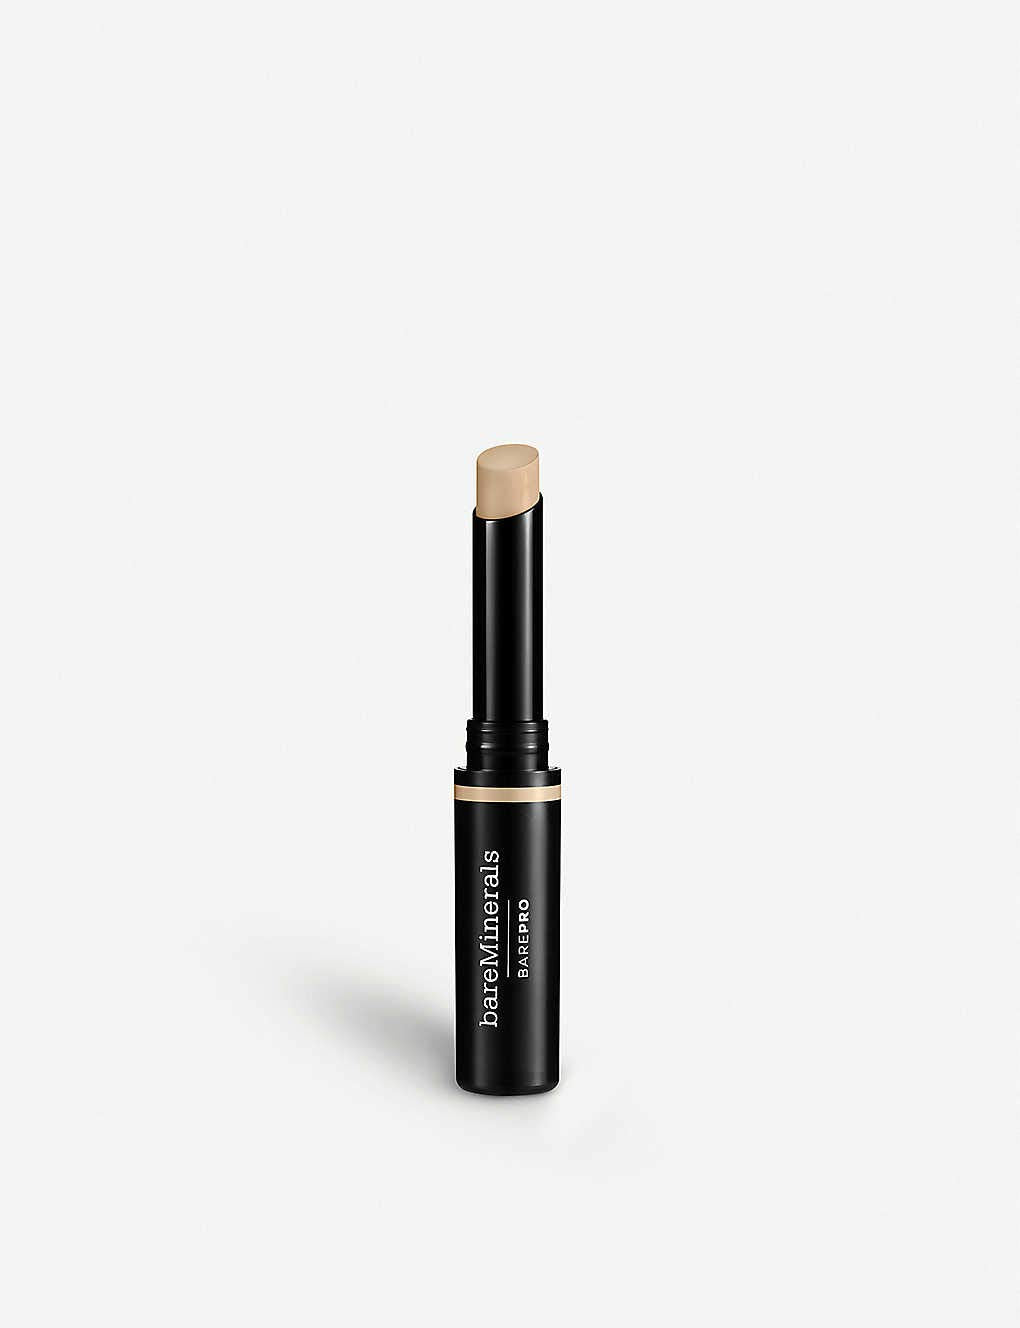 Bareminerals Barepro 16-Hour Full Coverage Concealer Fair - Cool 01, 0.09 Ounce, Multi (SG_B07B858MH2_US)